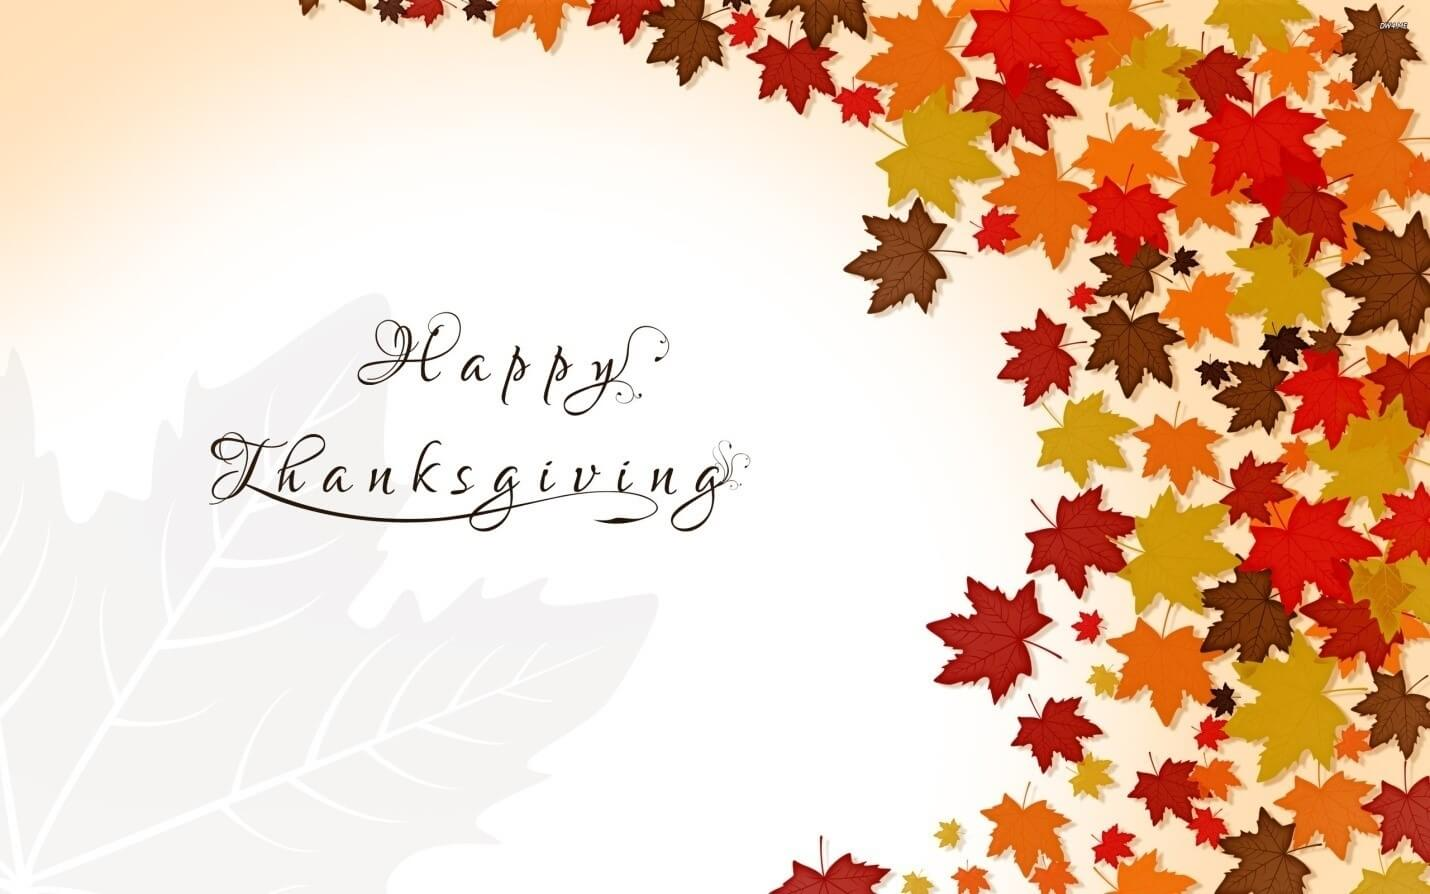 Happy Thanksgiving Wallpapers 2018 free download